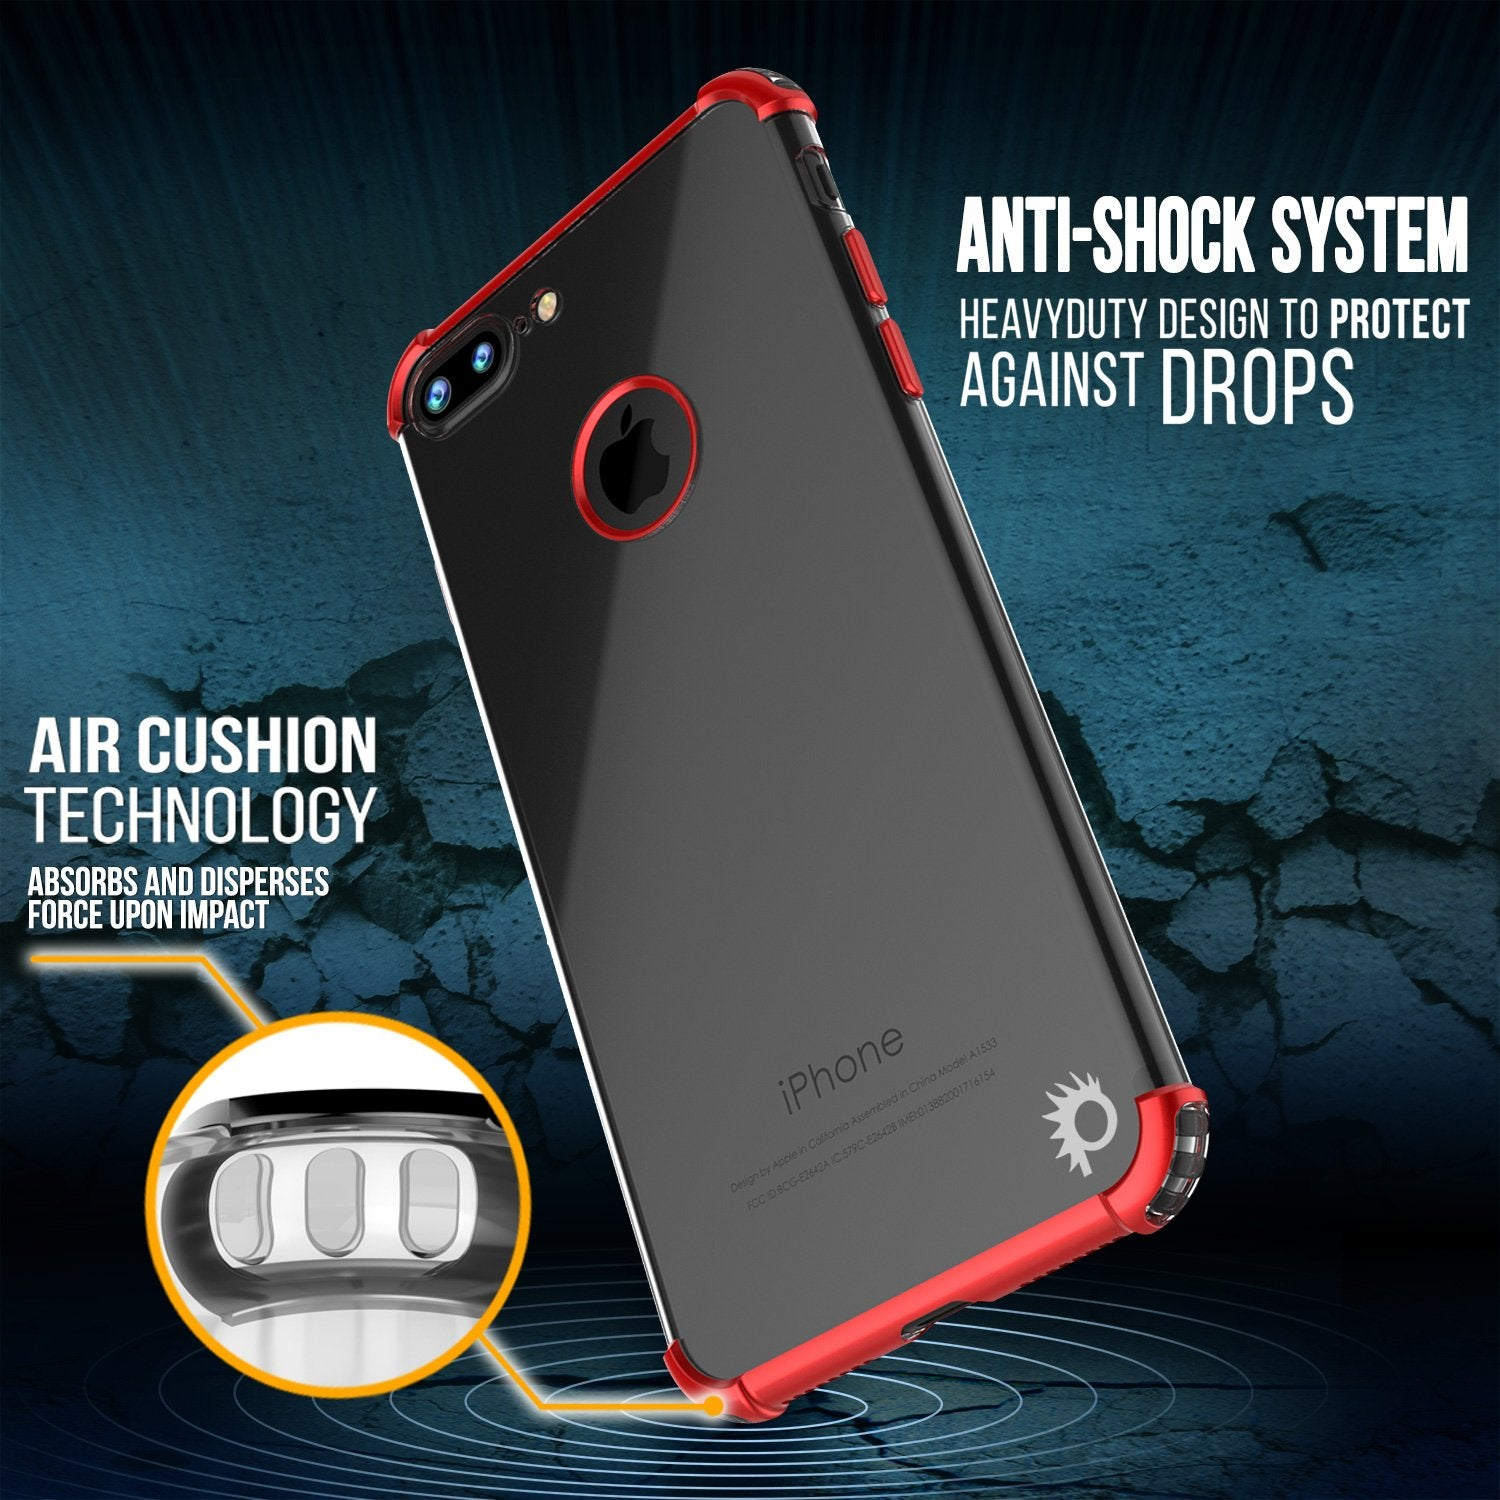 iPhone 7 PLUS Case, Punkcase [BLAZE Red SERIES] Protective Cover W/ PunkShield Screen Protector